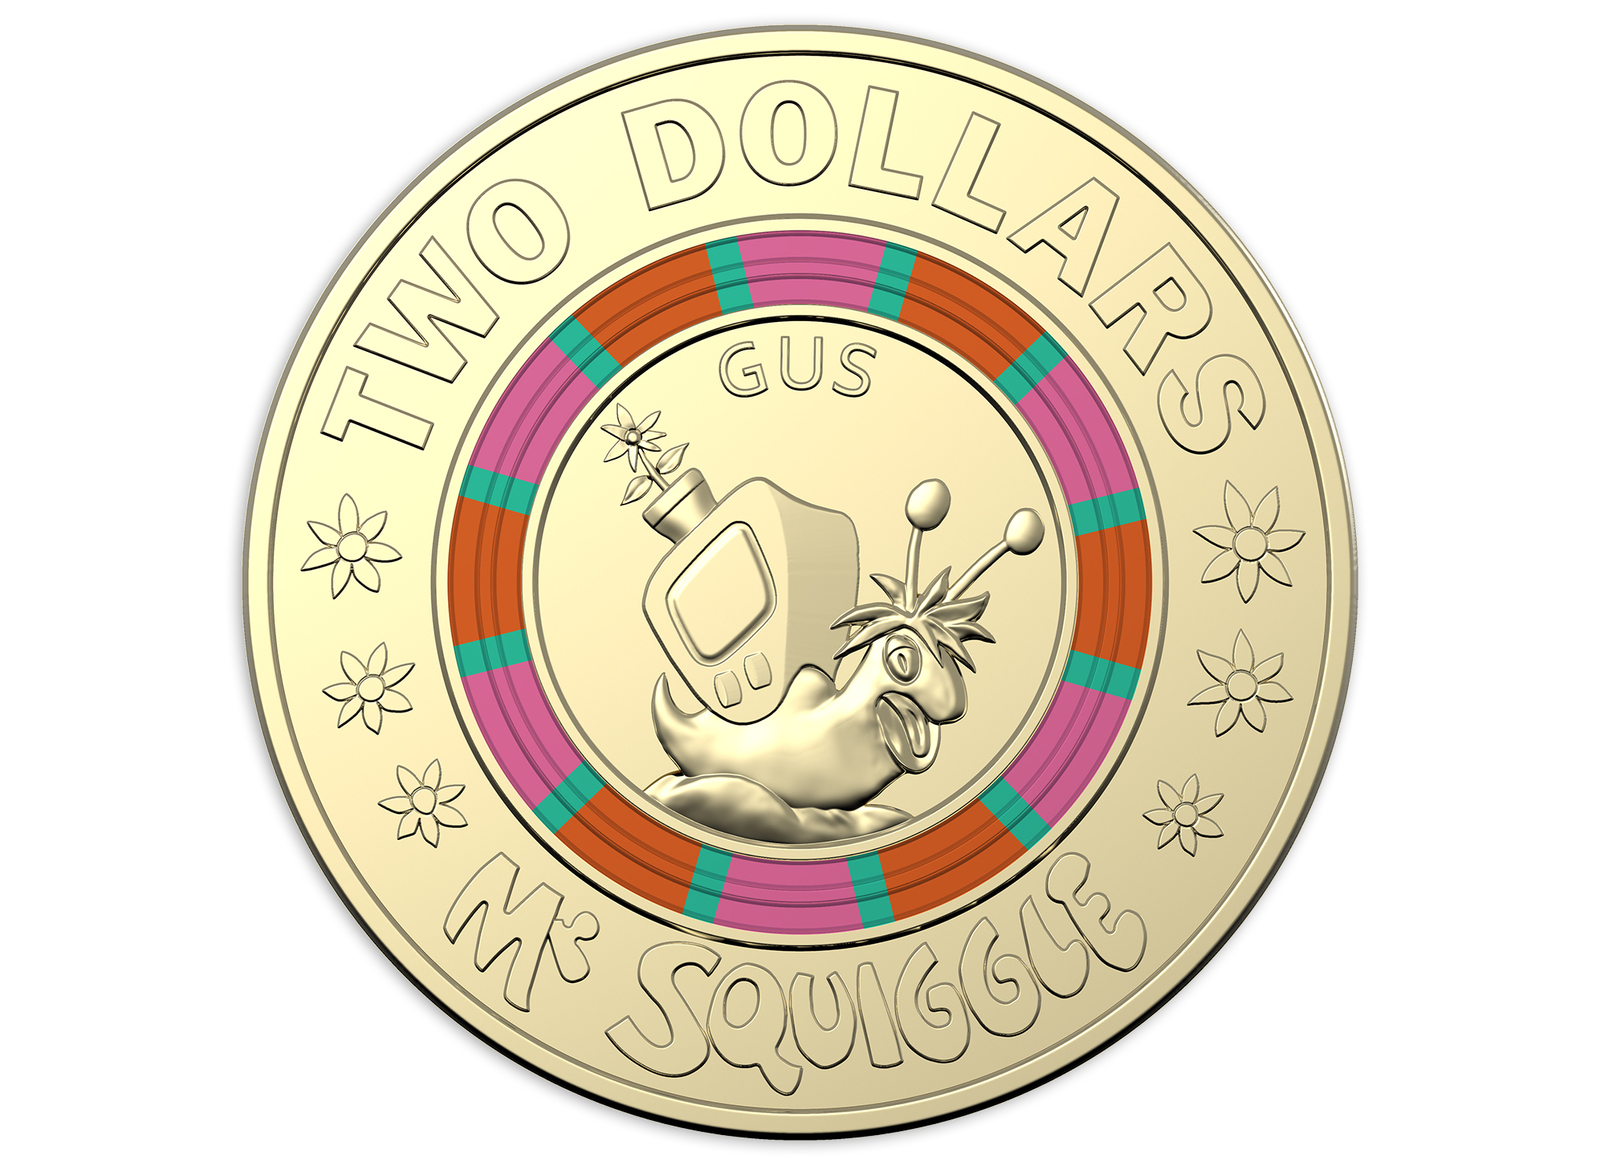 2019 Mr Squiggle and Friends 60th Anniversary 7 coin collection.